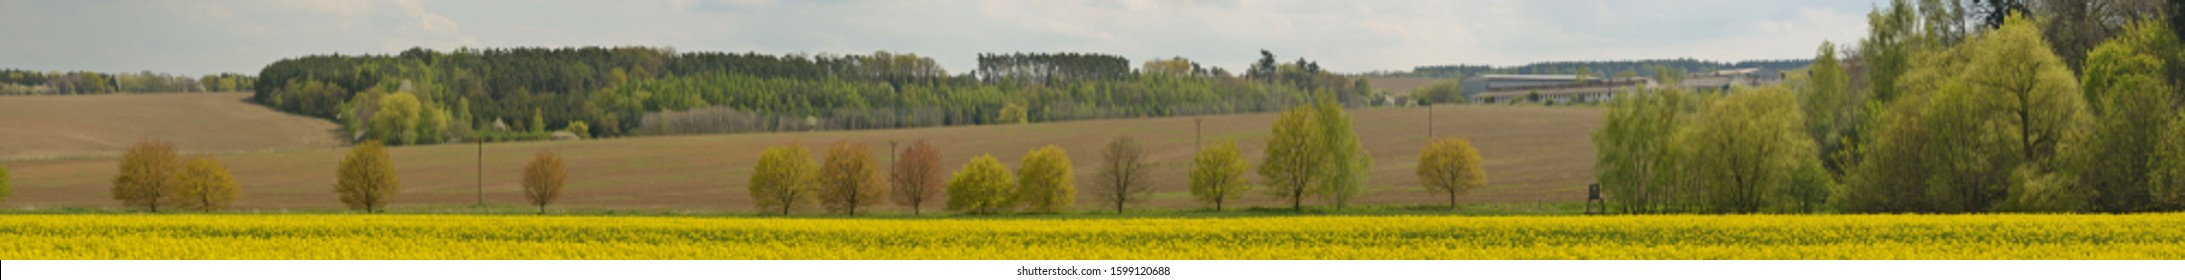 panorama of trees alley in spring with different starting colors of foliage, ulice - Shutterstock ID 1599120688